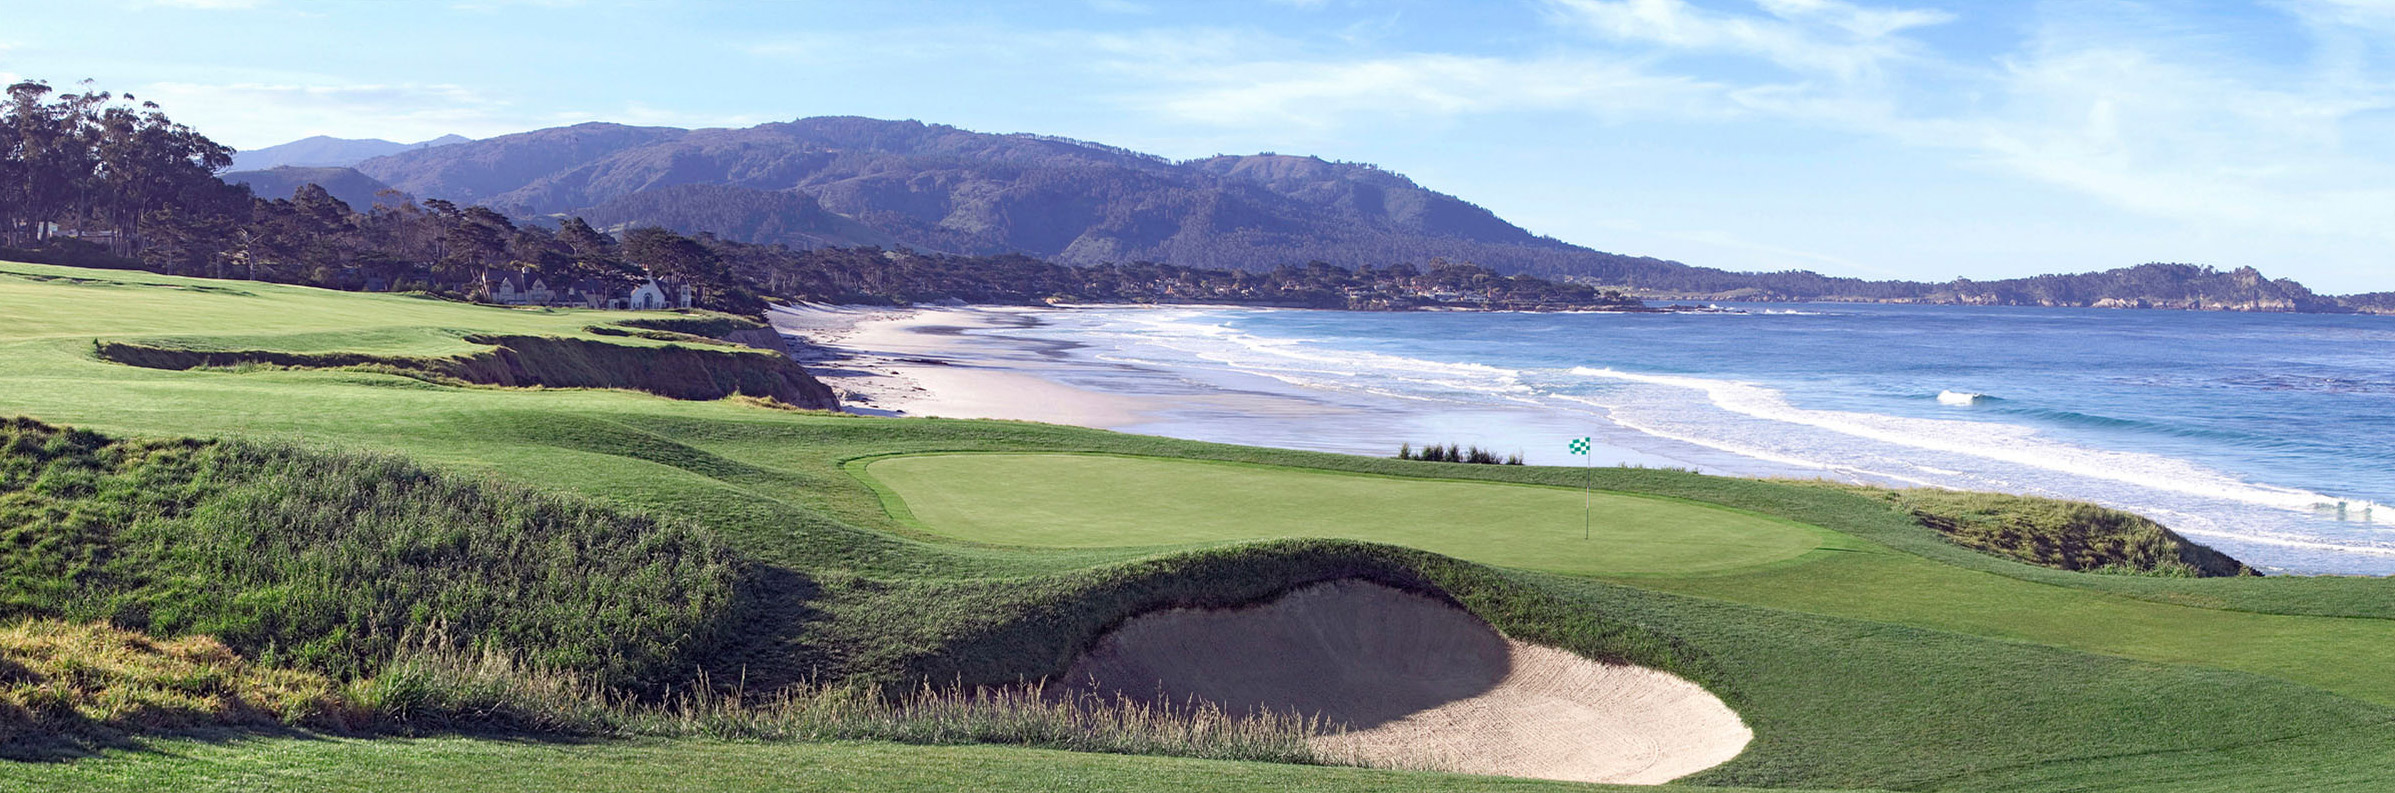 Golf Course Image - Pebble Beach No. 9